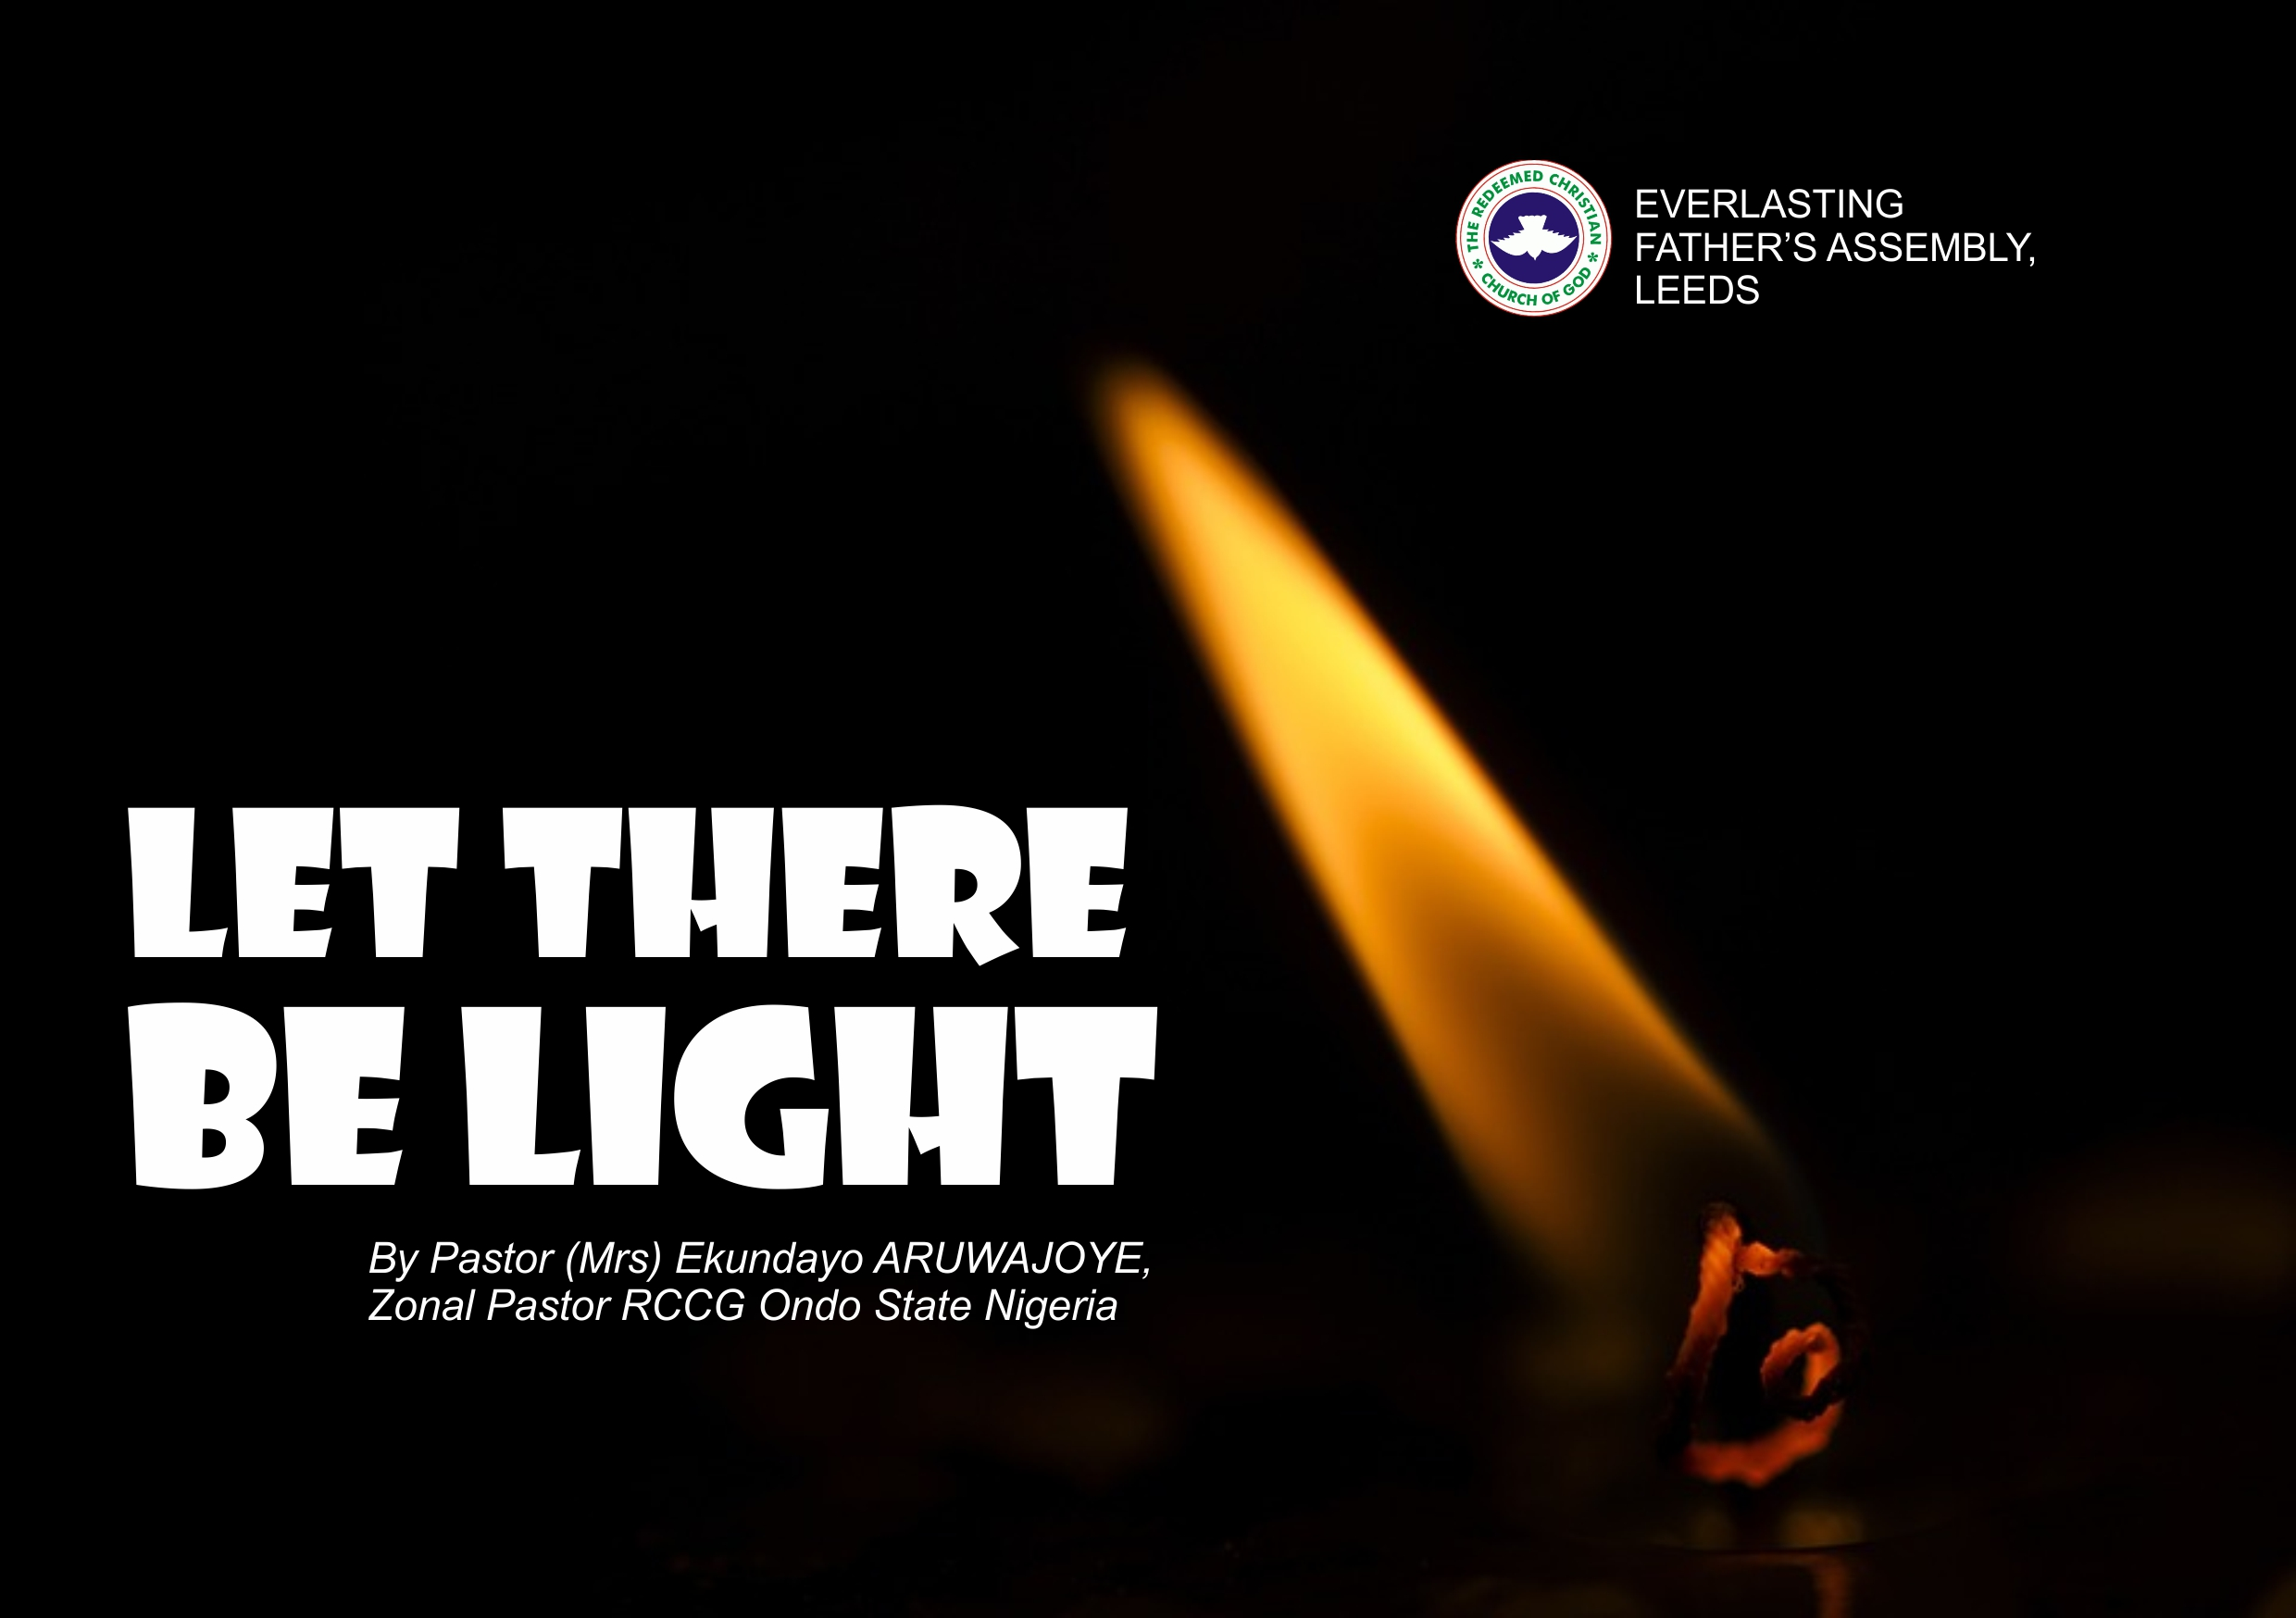 Let There Be Light, by Pastor (Mrs) Ekundayo Aruwajoye